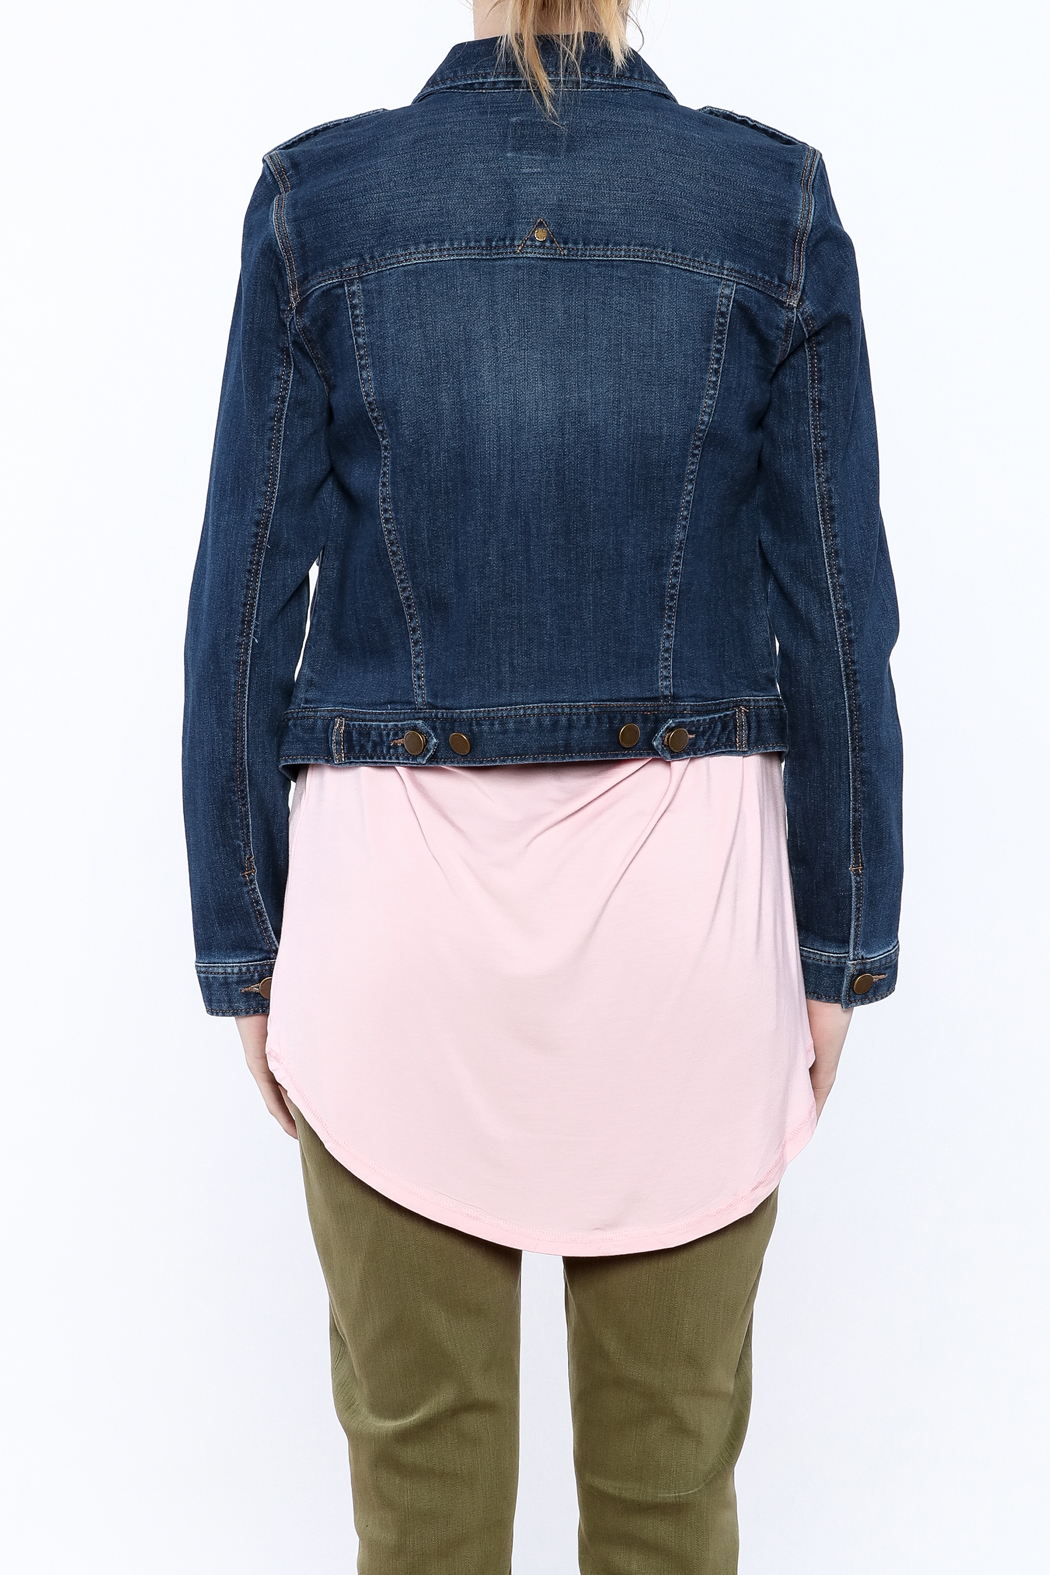 Liverpool Jeans Company Classic Denim Jacket - Back Cropped Image